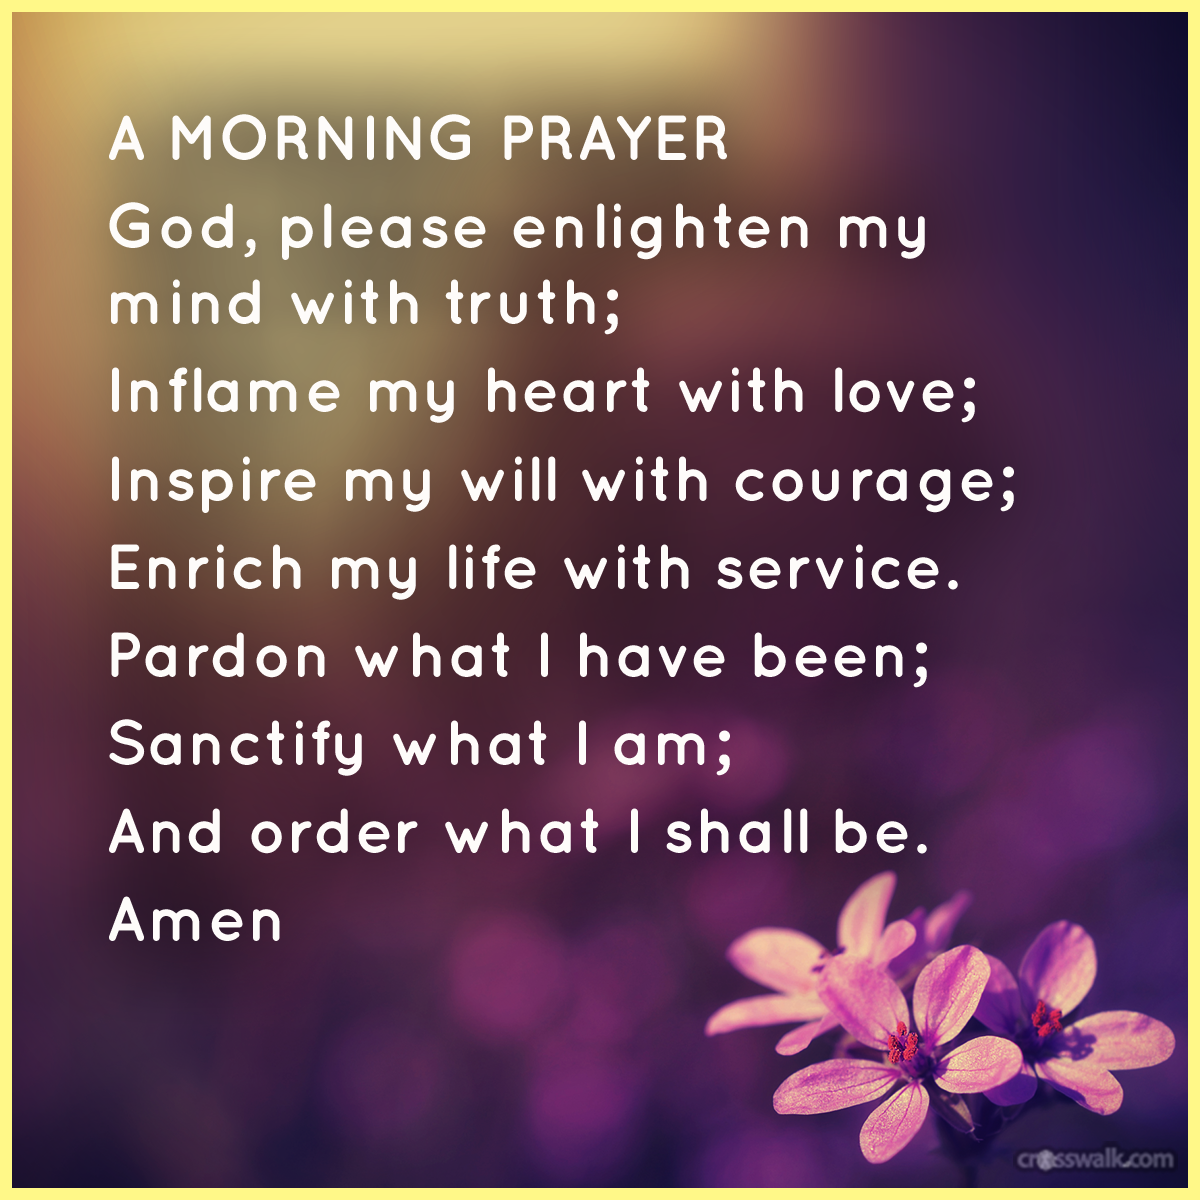 Images for good morning prayer for family and friends faith images for good morning prayer for family and friends altavistaventures Choice Image